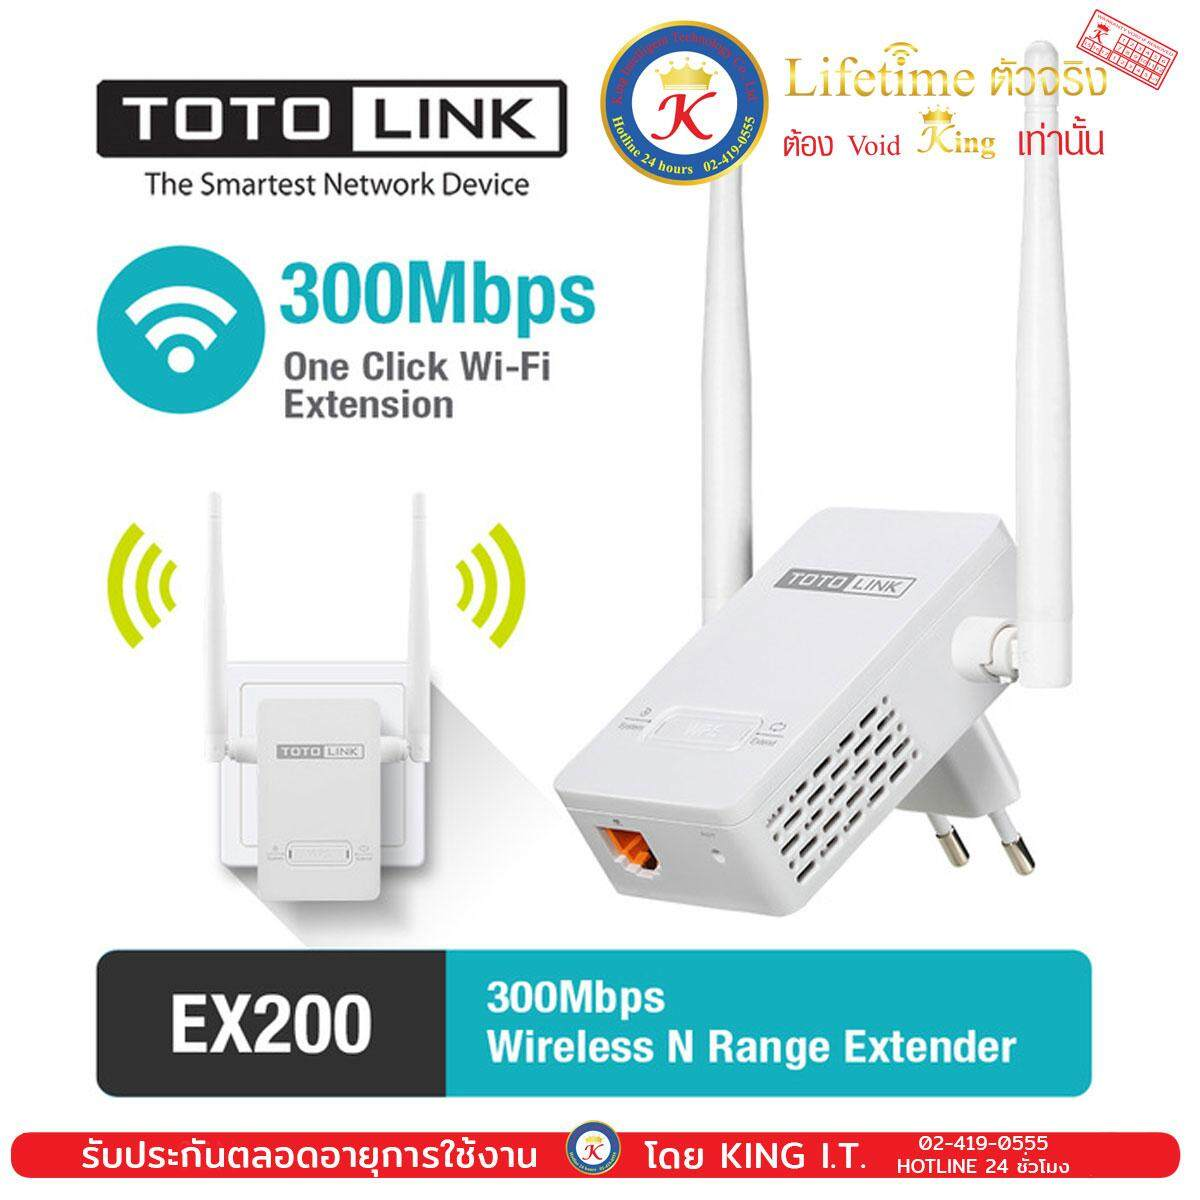 Sell Totolink S808g 2000 Cheapest Best Quality Th Store Pl200kit 200mbps Powerline Adapter Thb 1100